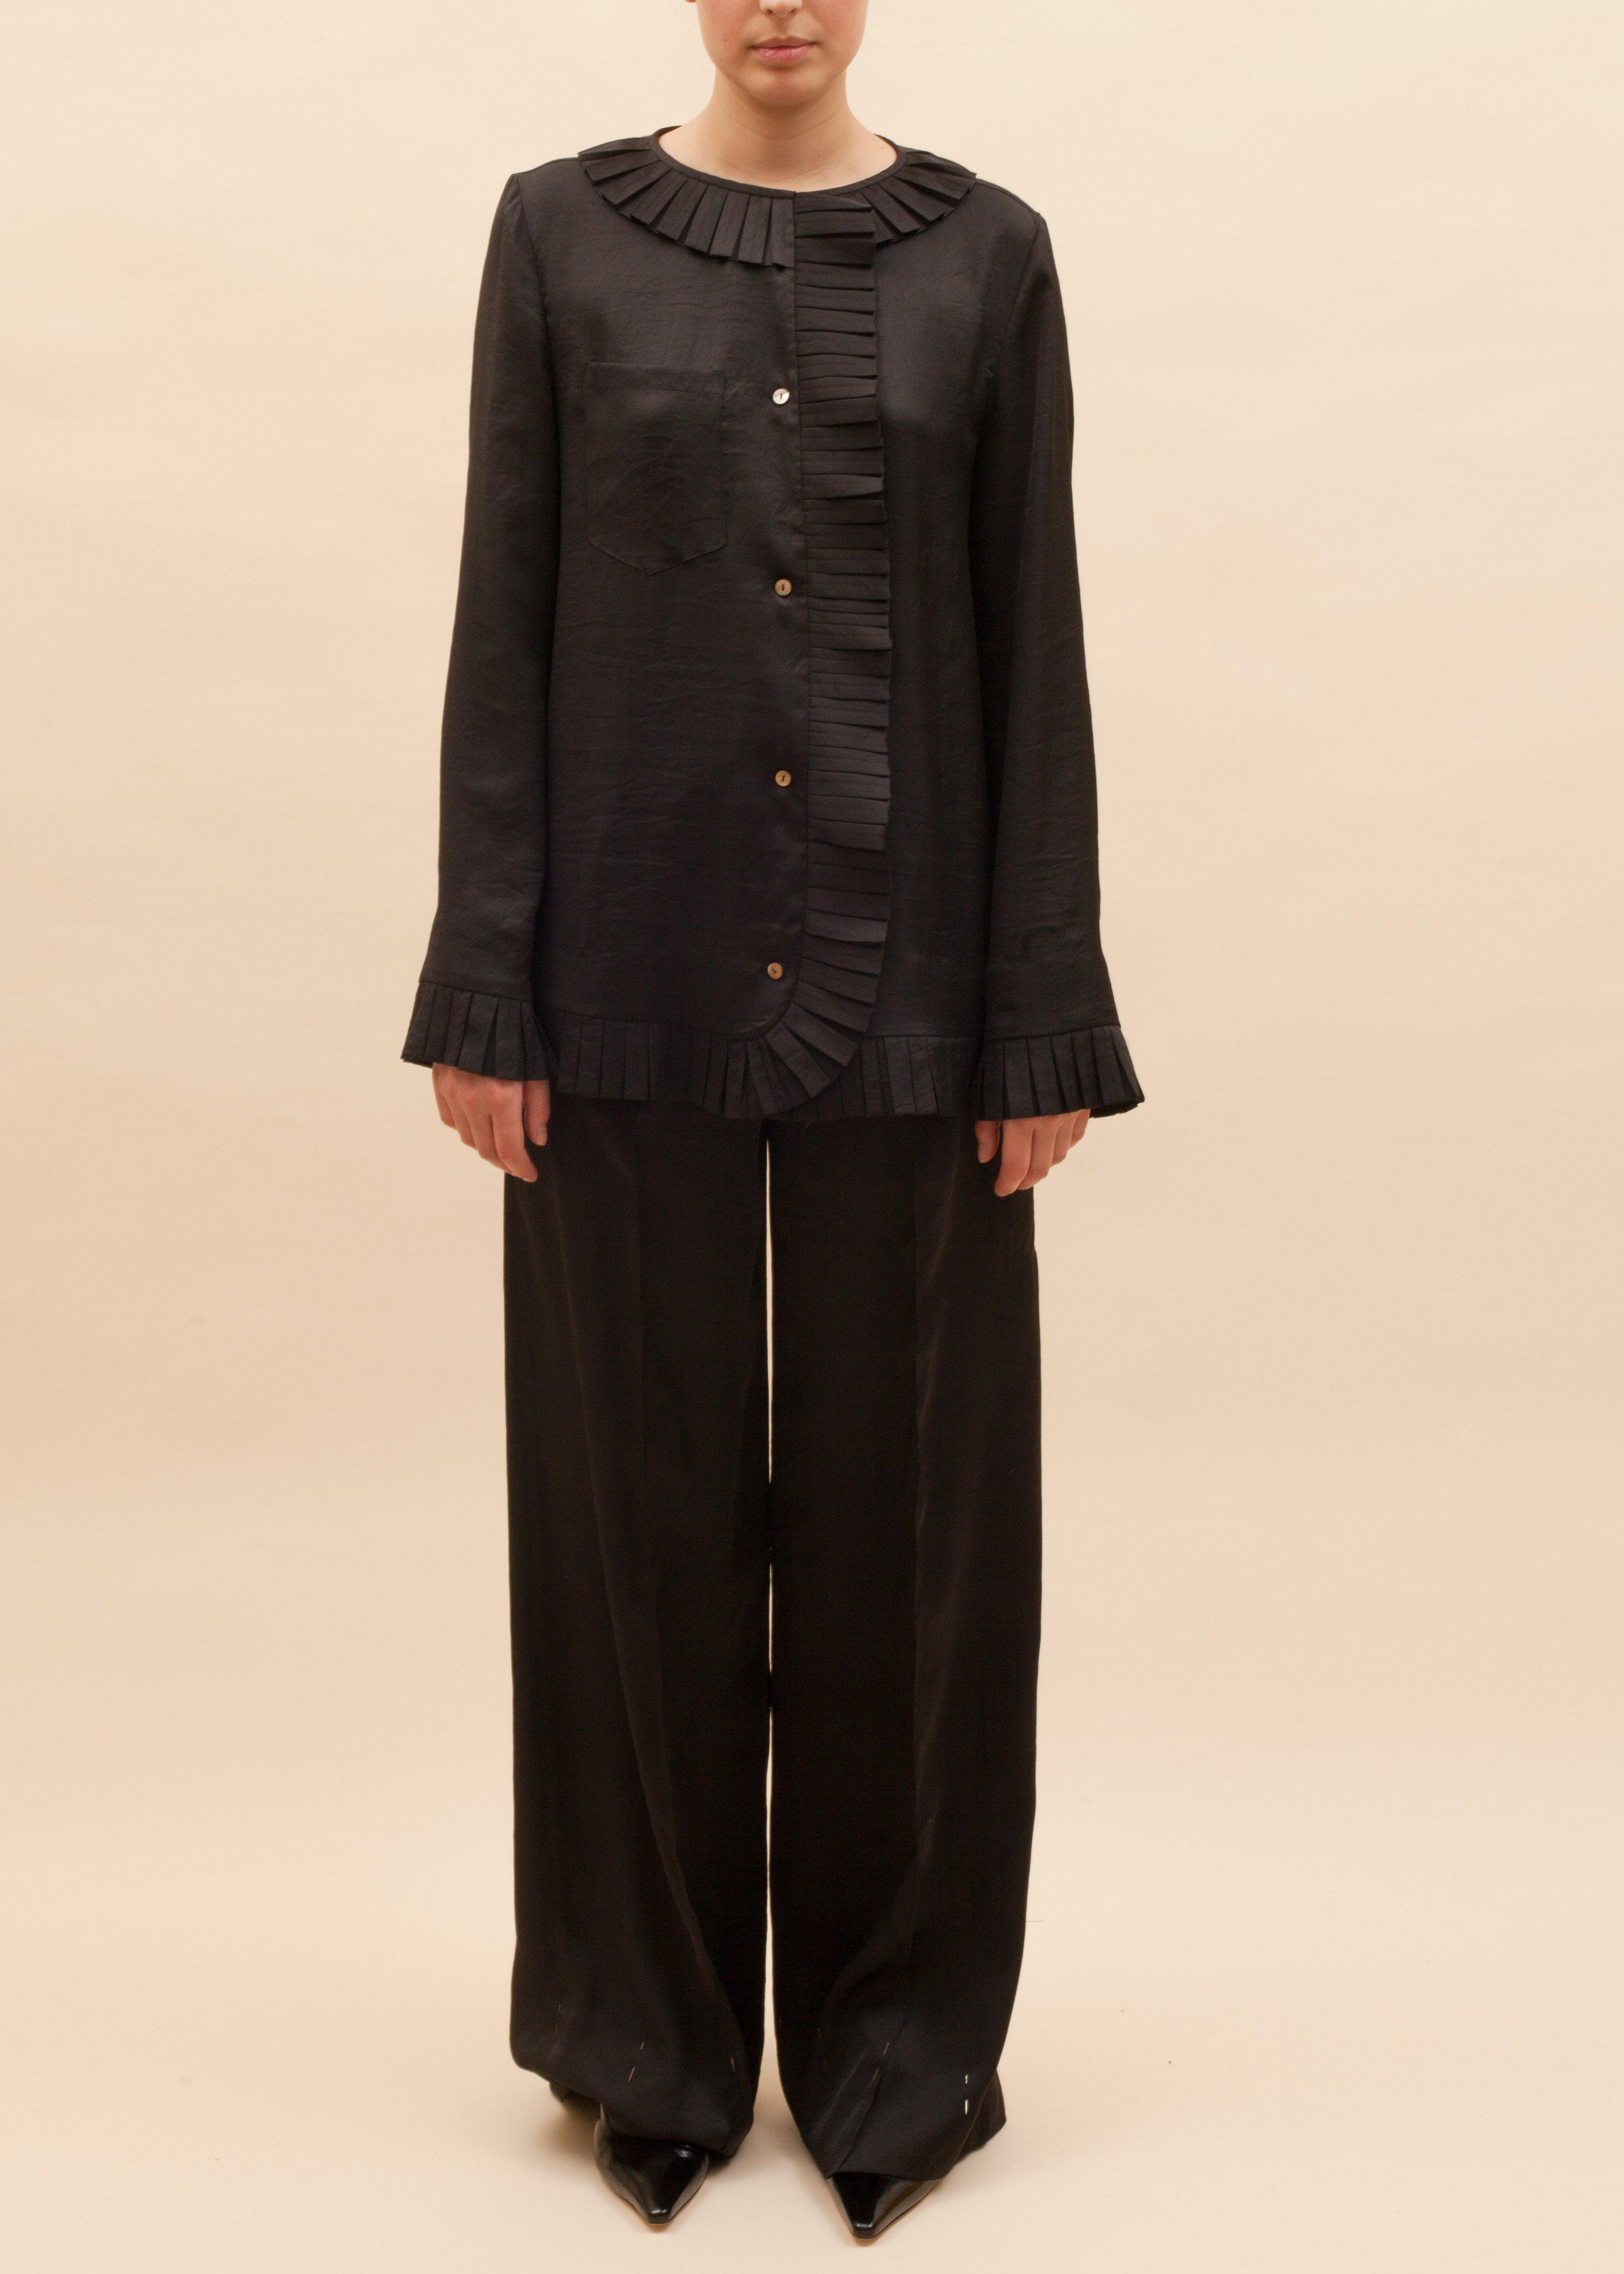 Eve Trousers Satin Black - SPECIAL PRICE